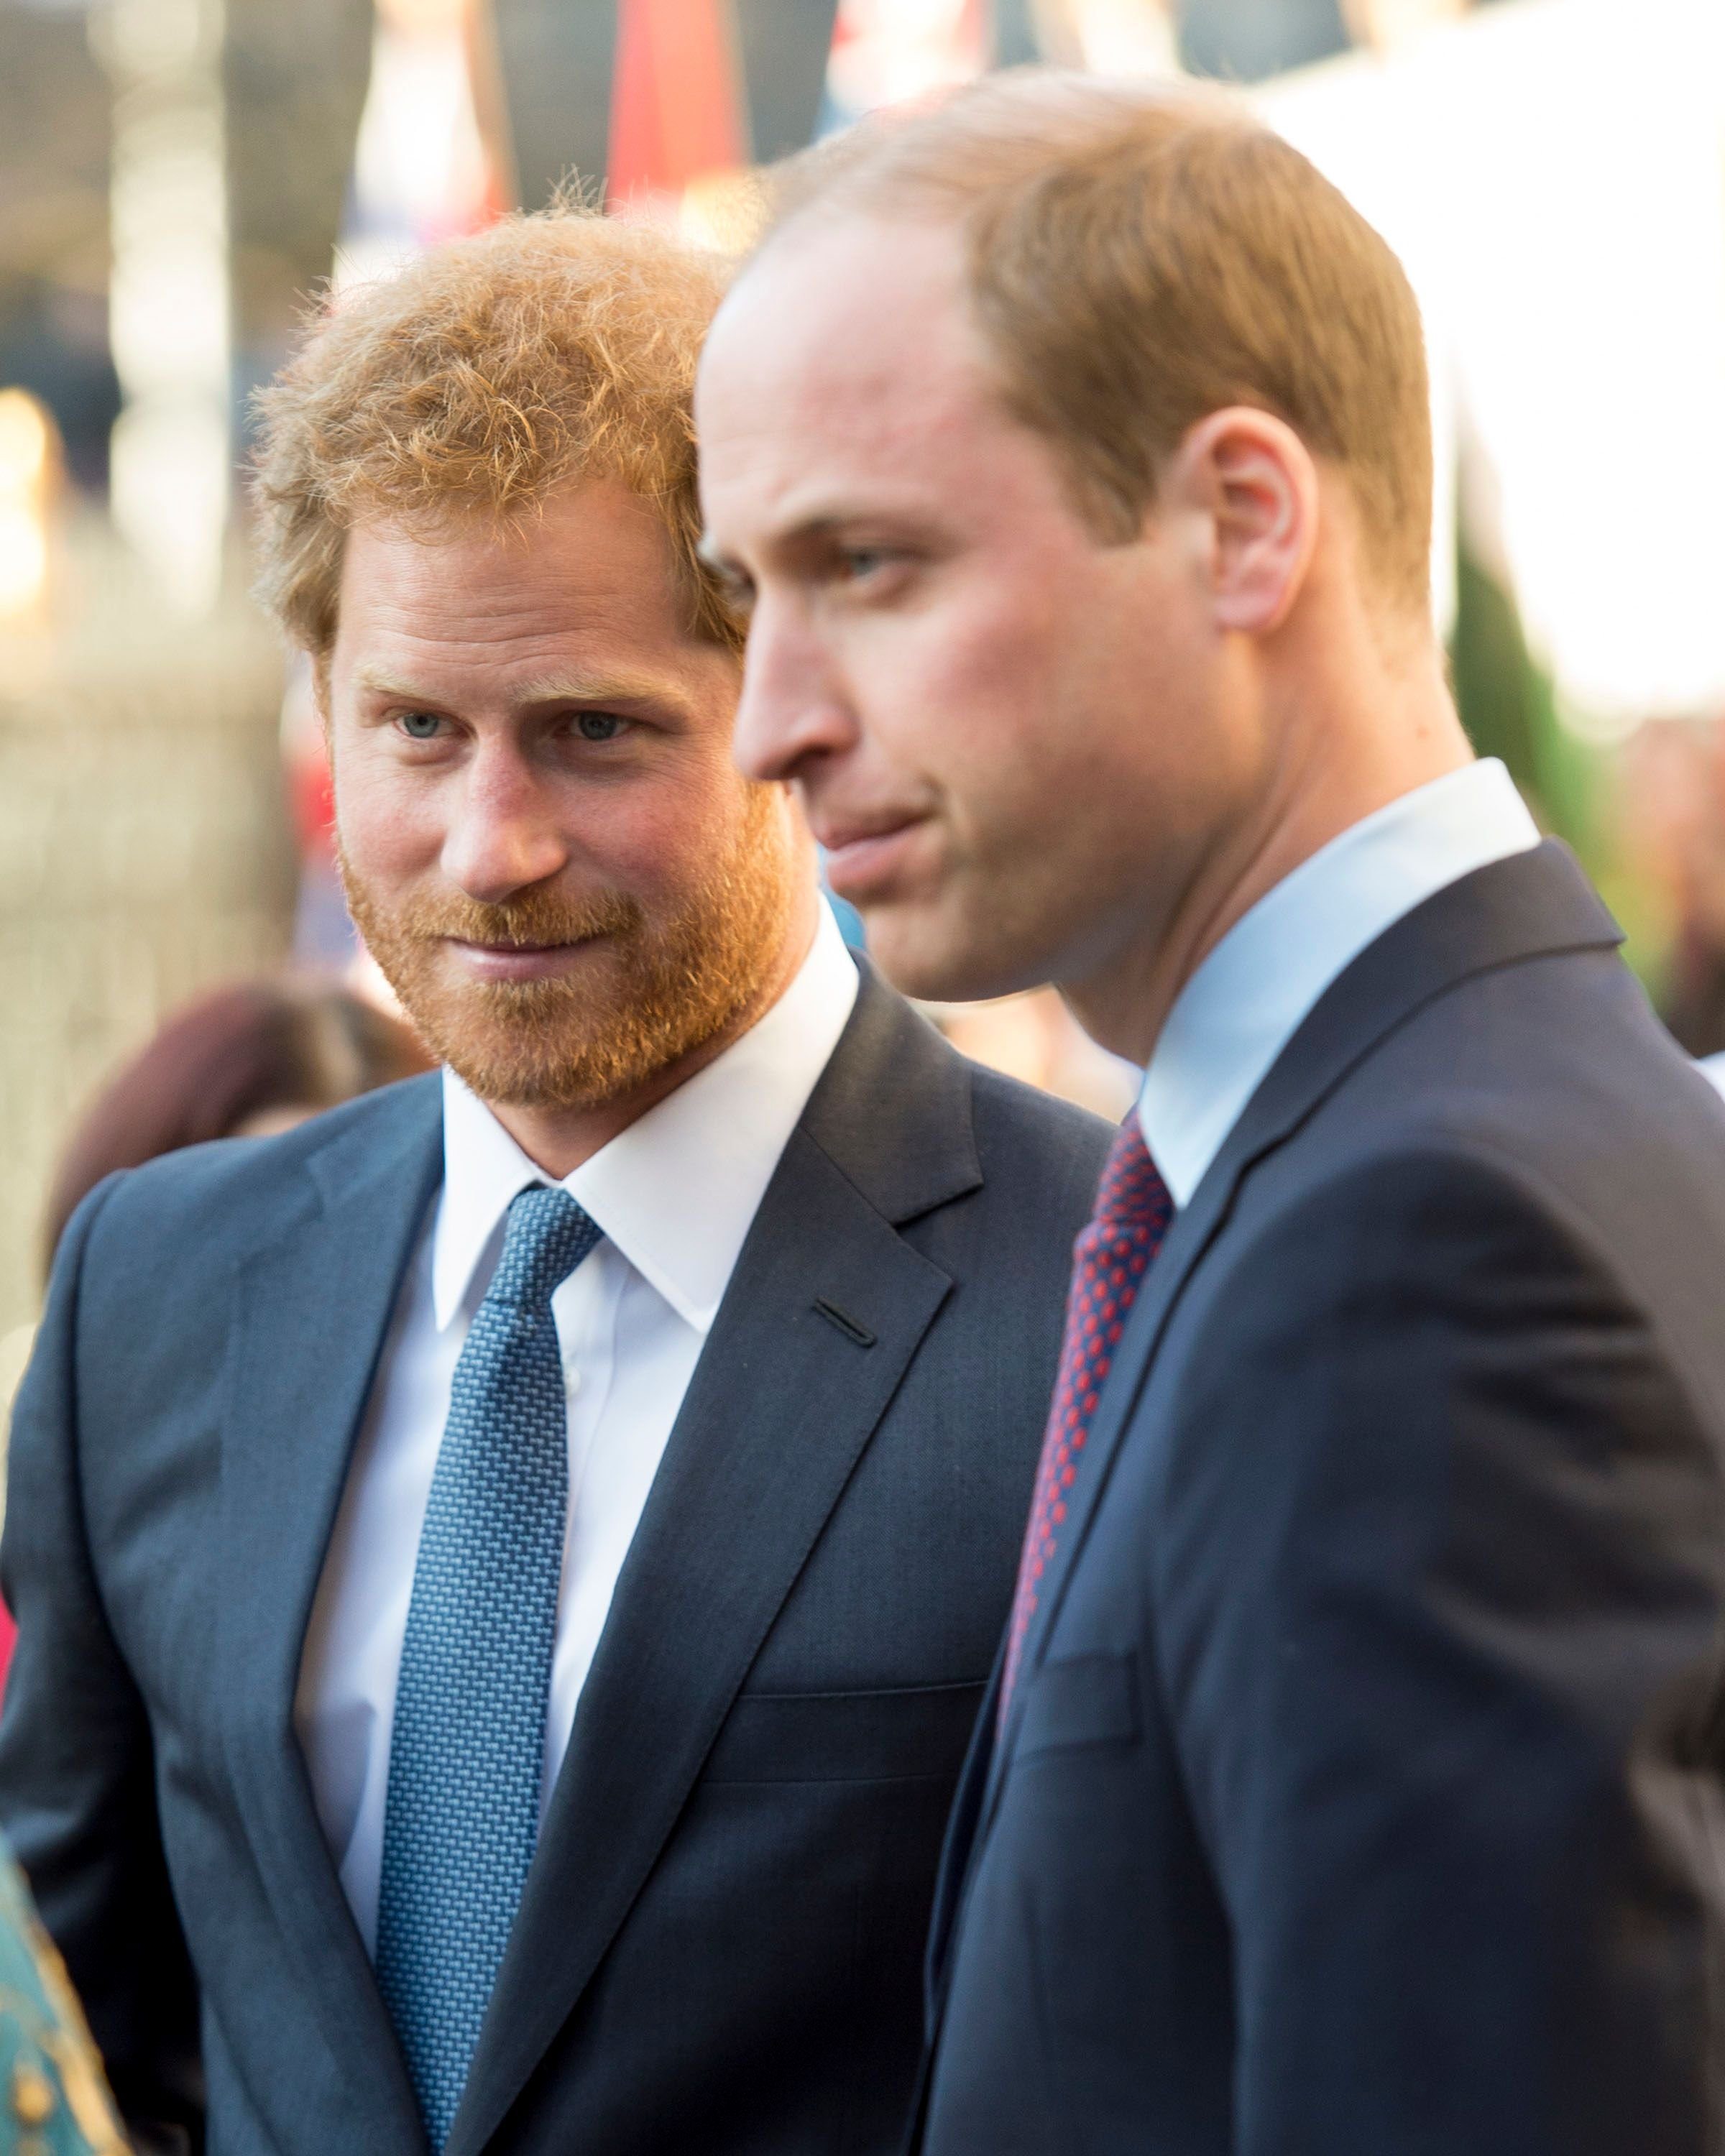 Prince Harry and Prince William at the Commonwealth Observance Day Service on March 14, 2016 | Getty Images